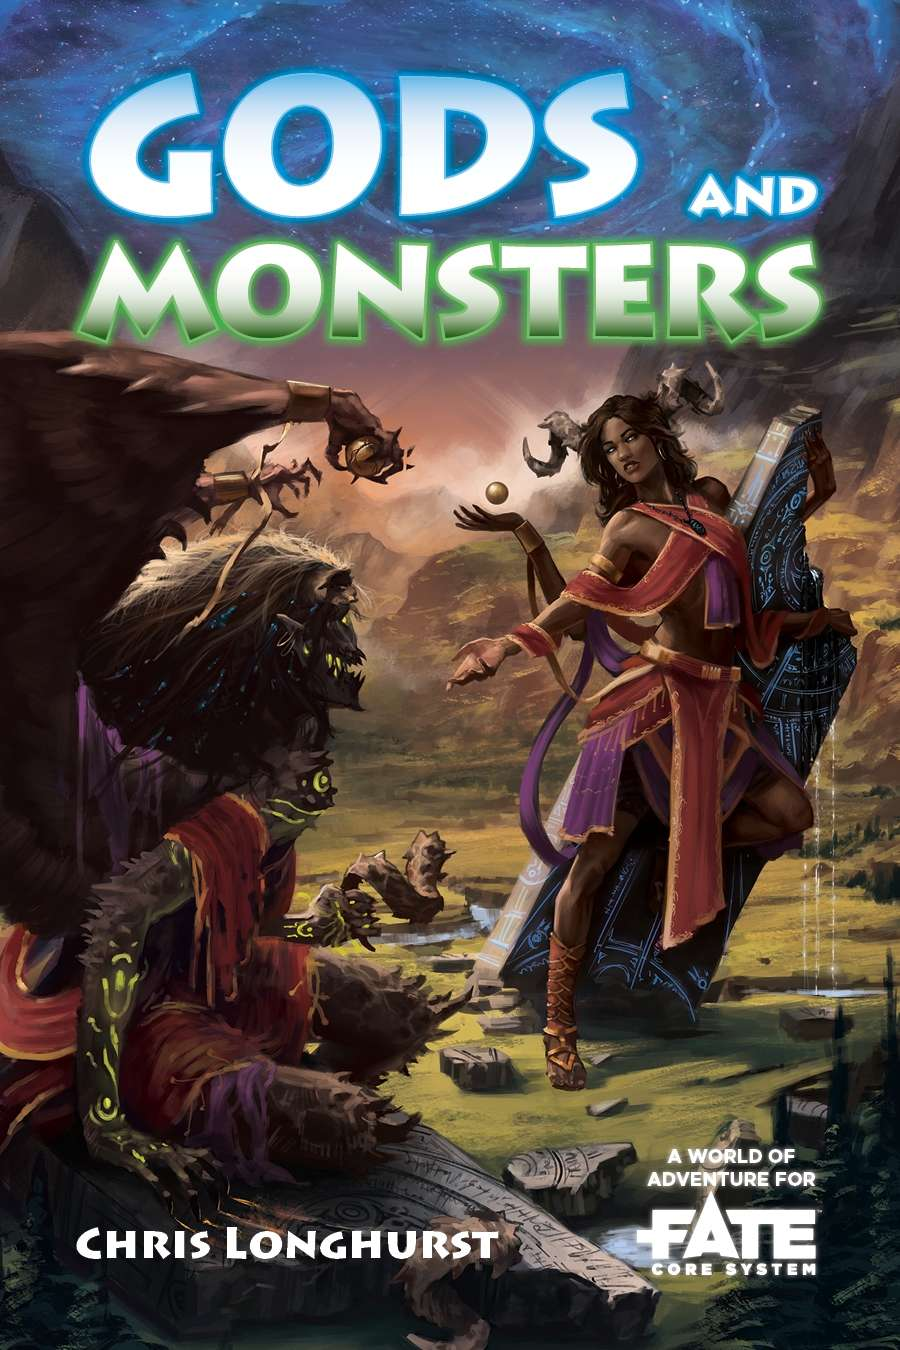 Gods and Monsters • A World of Adventure for Fate Core